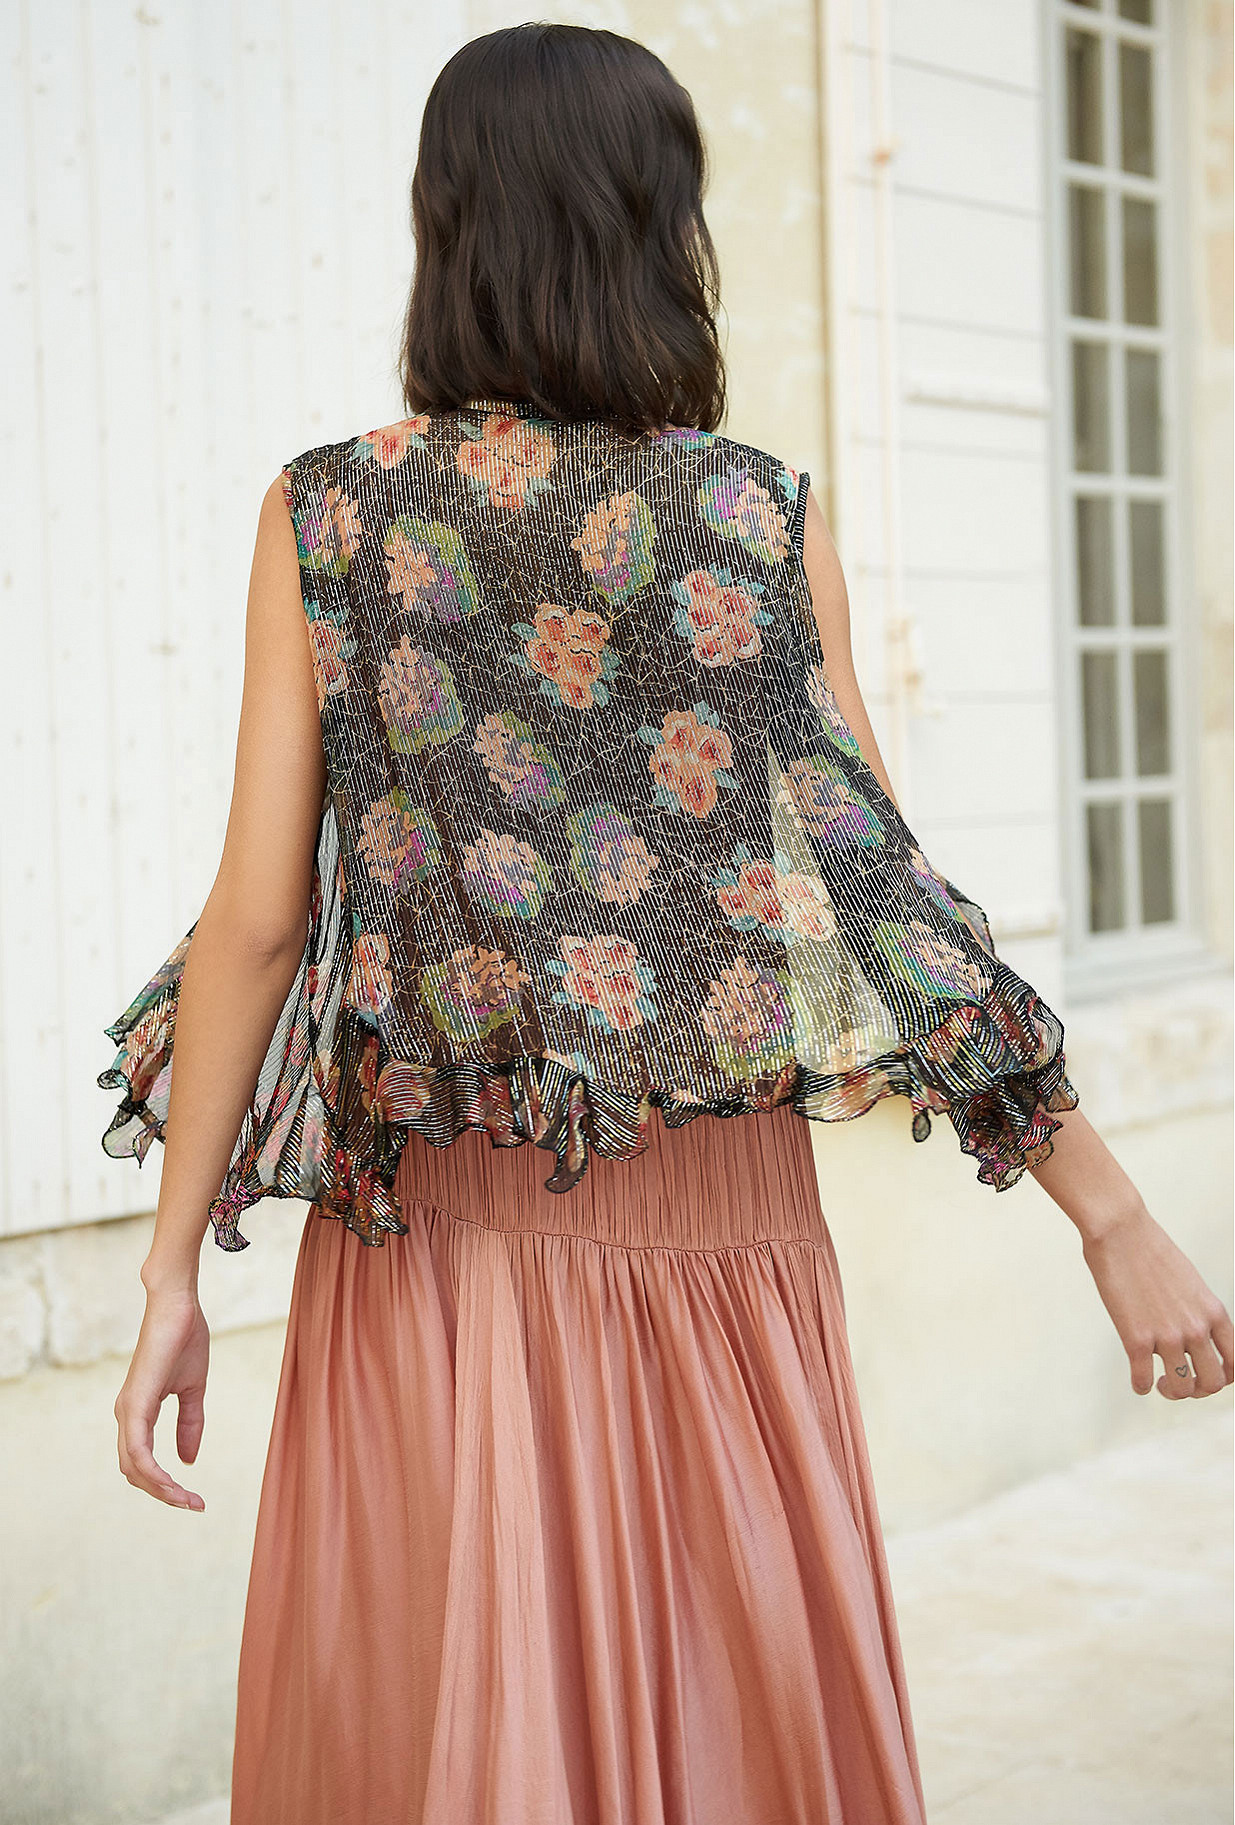 Paris clothes store Top  Fasta french designer fashion Paris